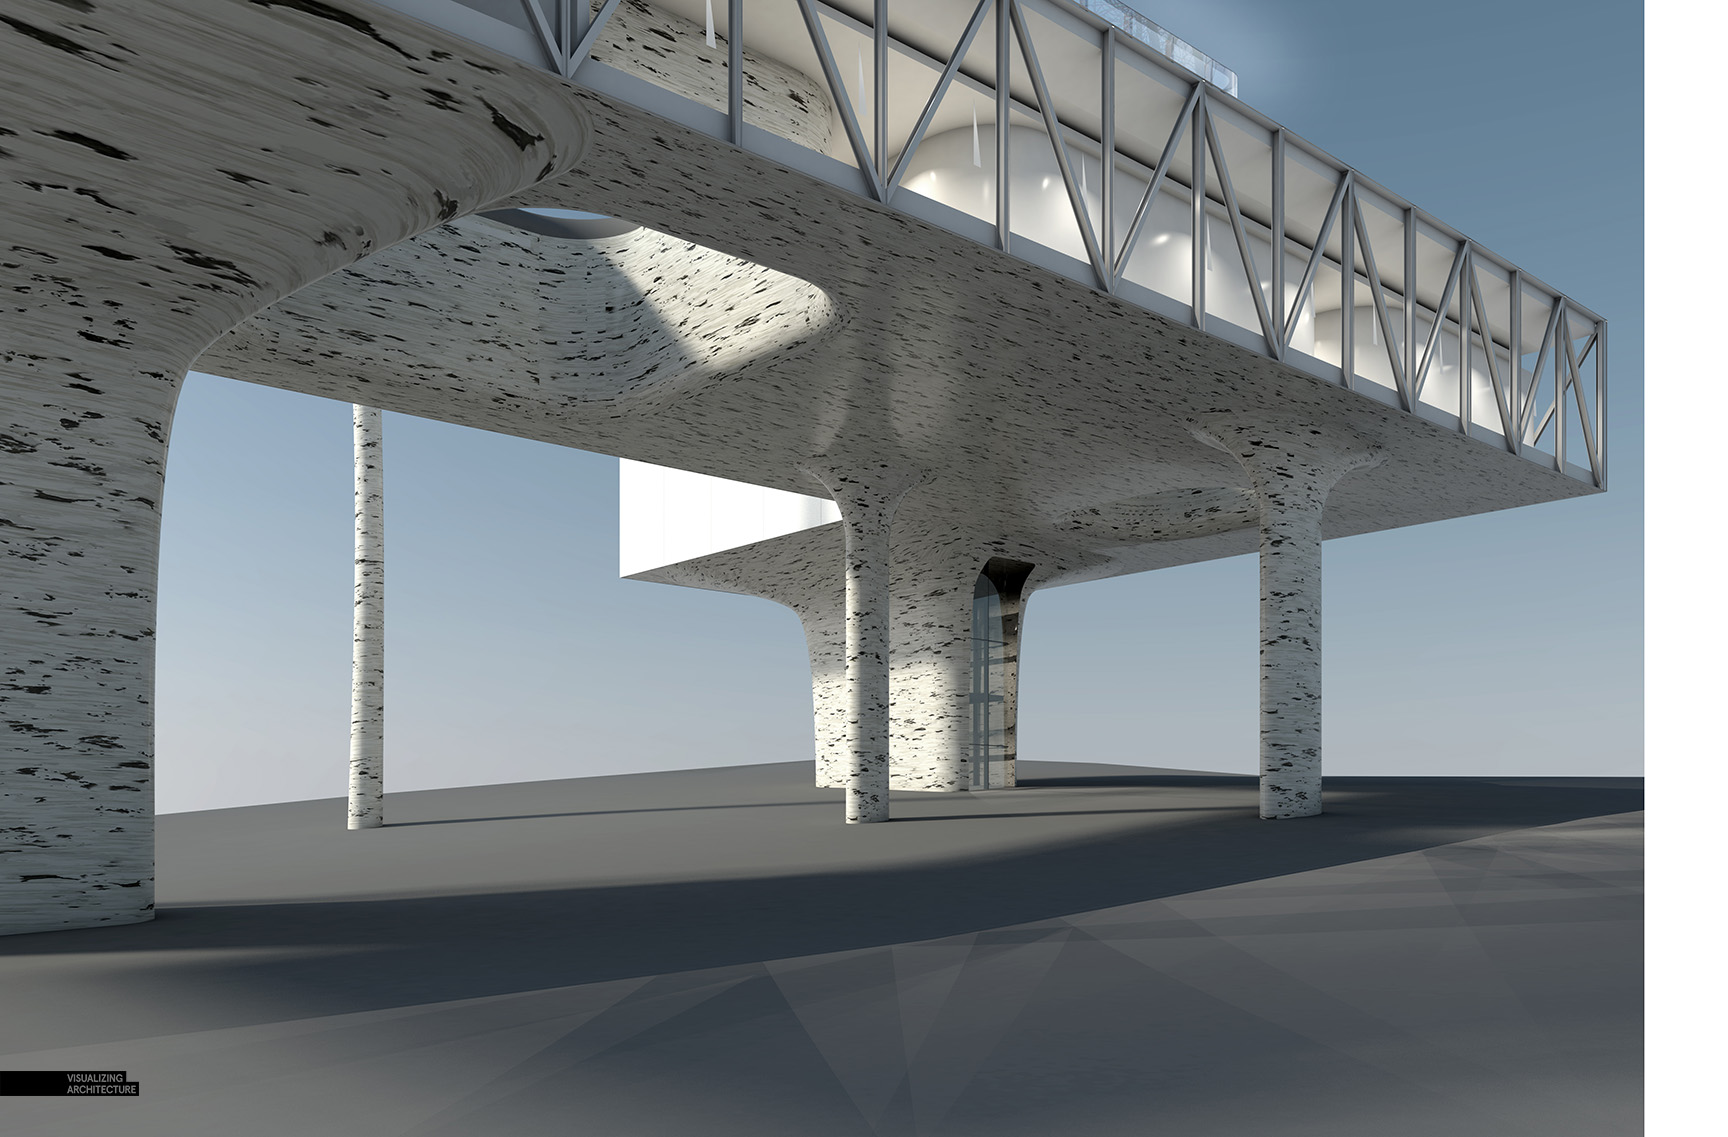 research_lab_winter_1_baserendering